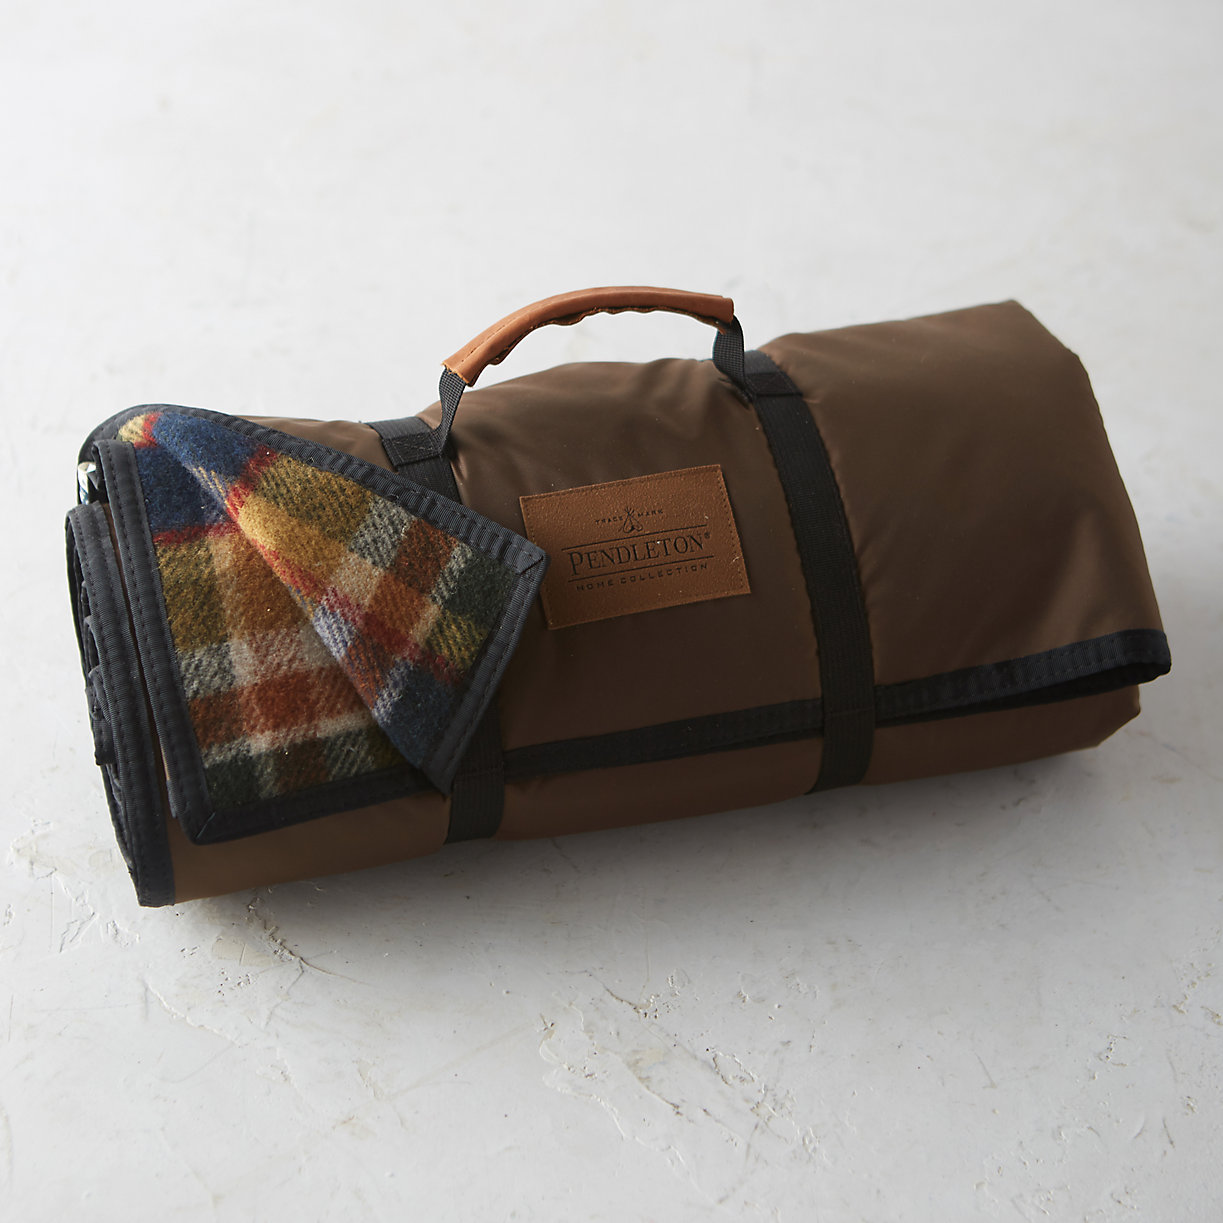 Pendleton Wool Roll Up Camp Blanket Terrain